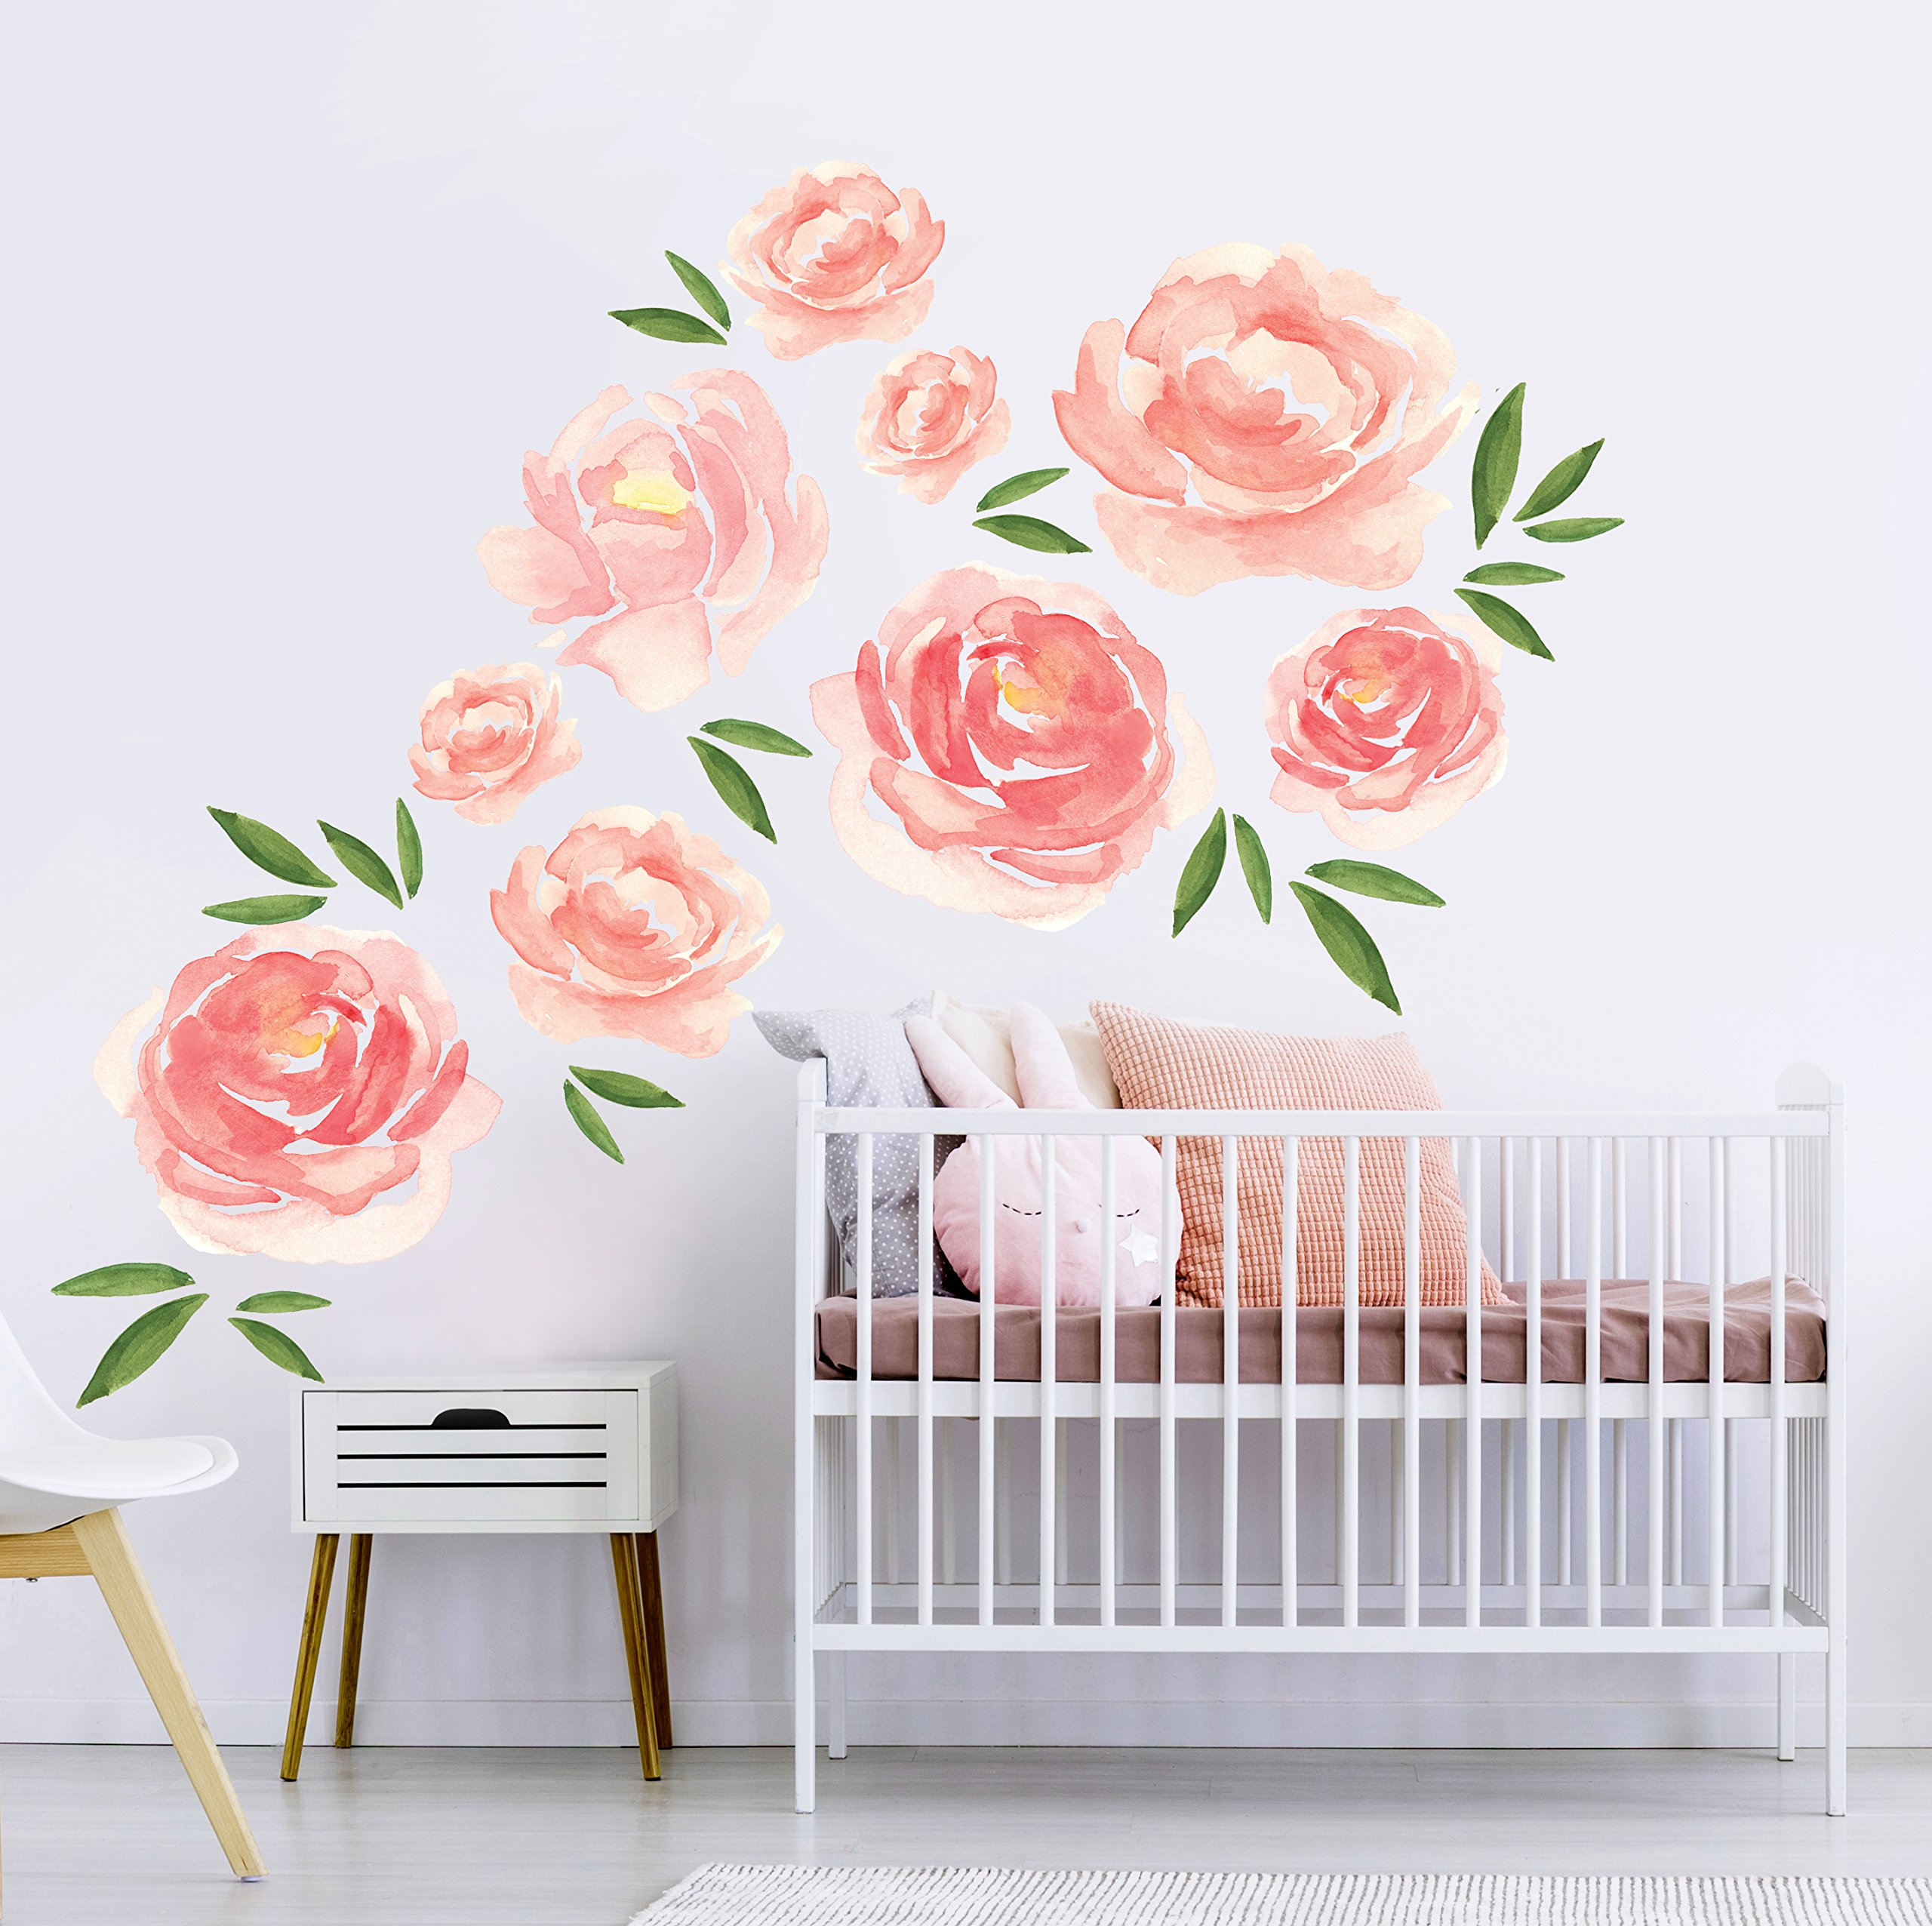 Better Than Paint E116374 Faster & Easier Than Stenciling, Painting Or Wallpaper: This Is Not A Decal, This Is An Art Transfer Watercolor Blooms Wall Décor Fast & Easy, Pink by Better Than Paint (Image #1)